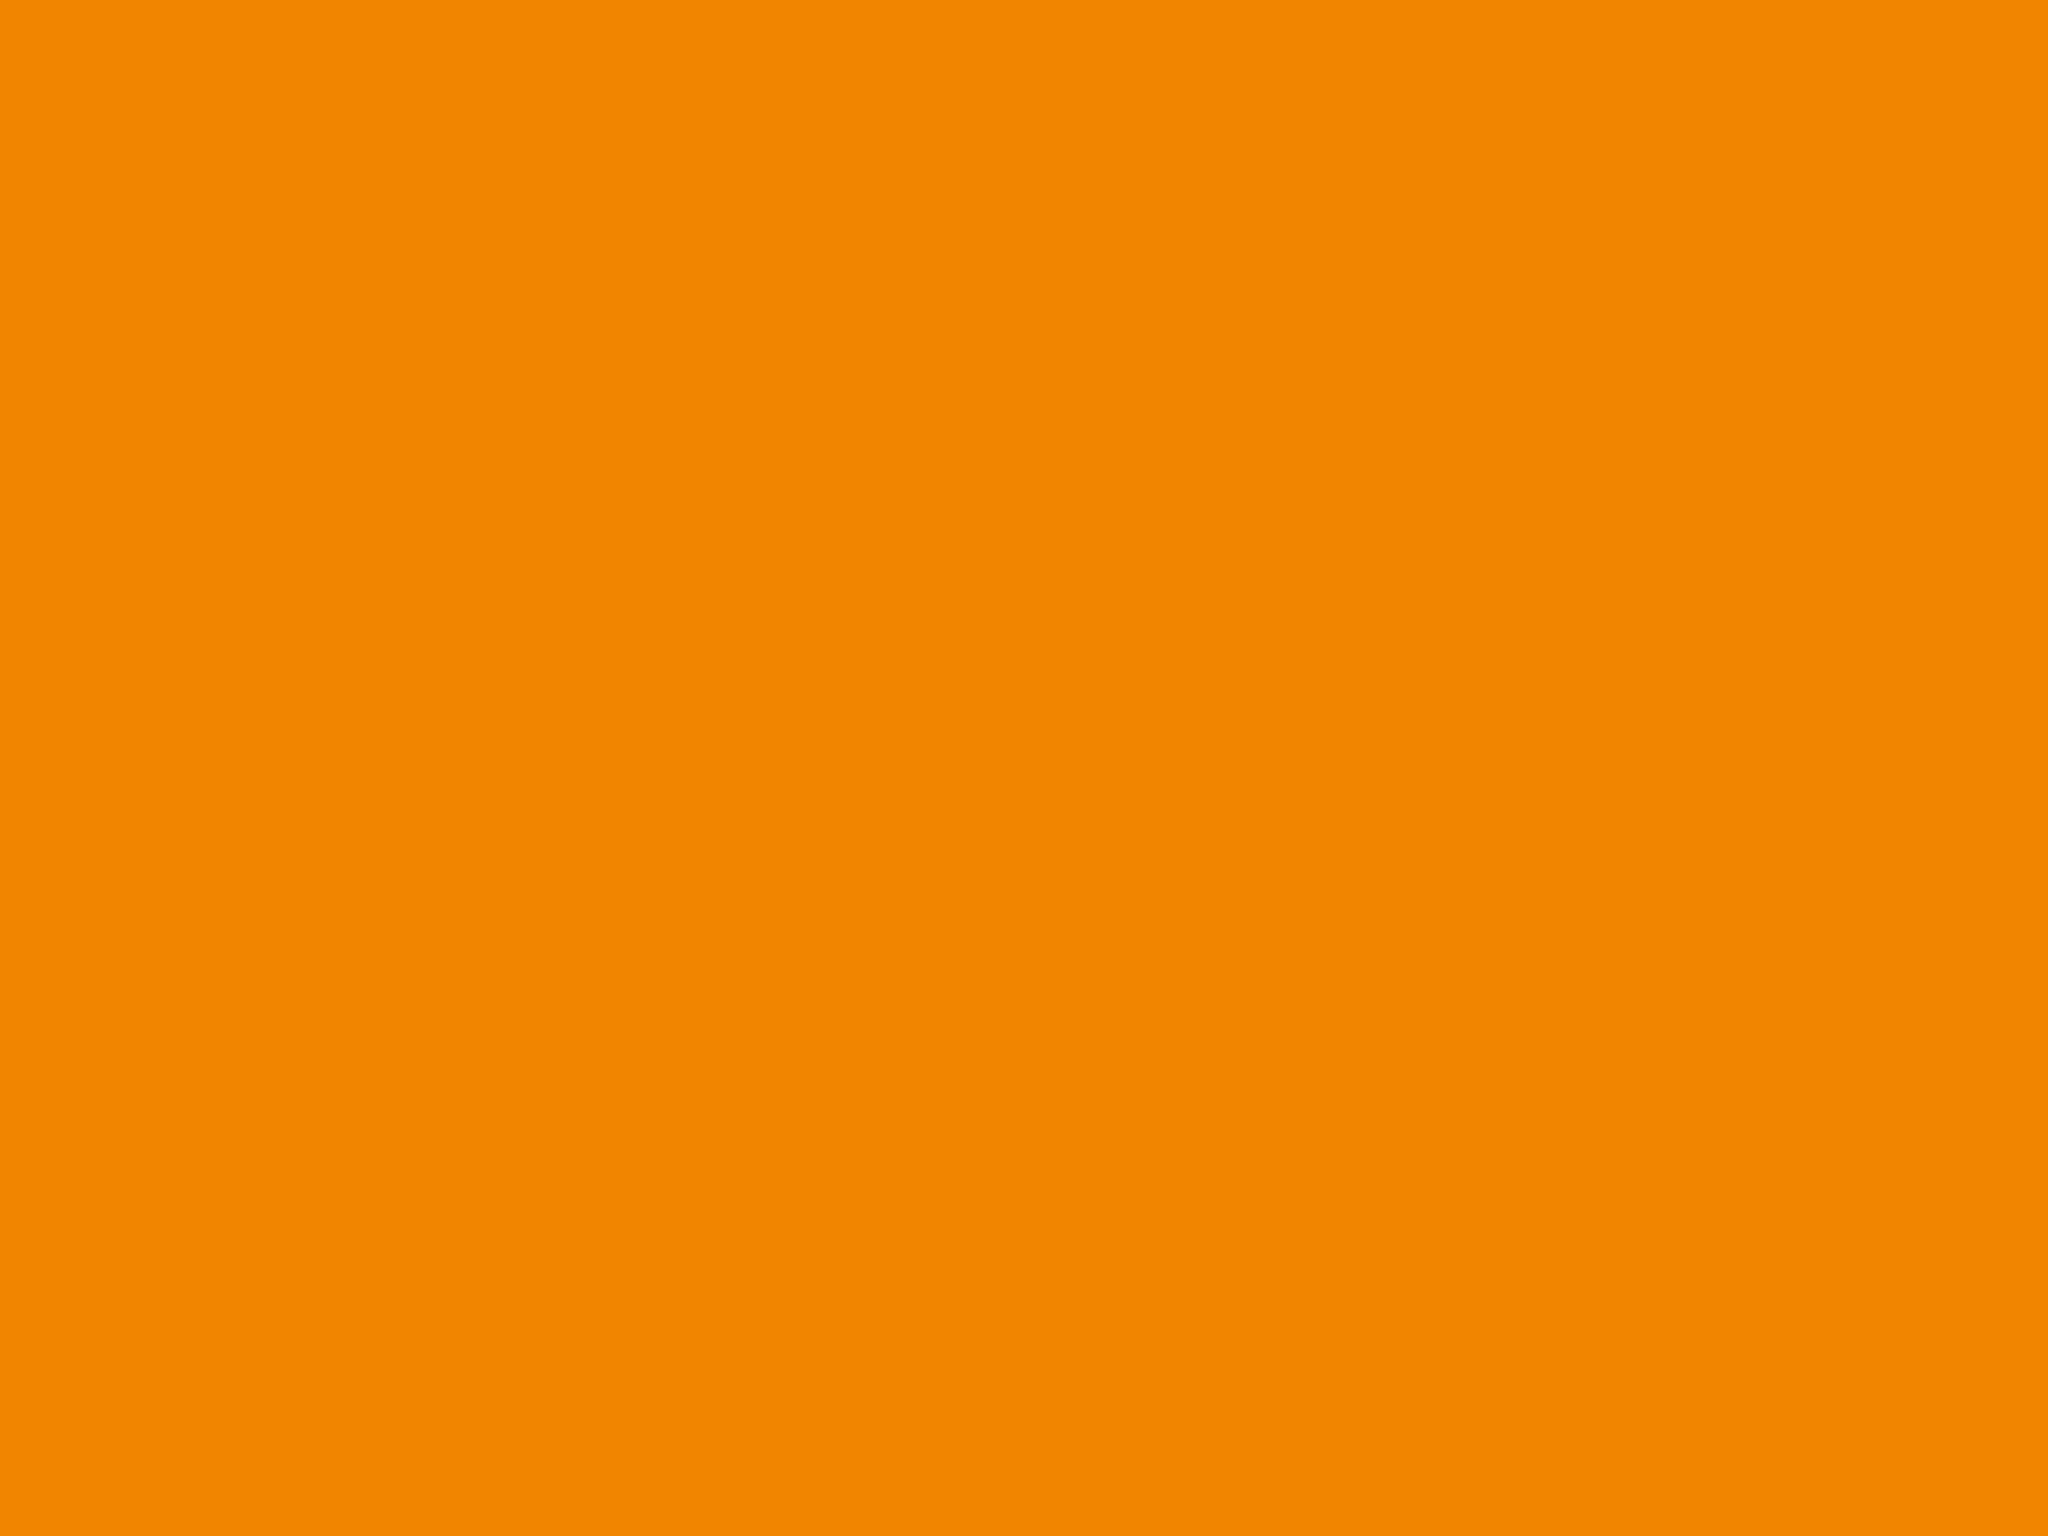 2048x1536 Tangerine Solid Color Background